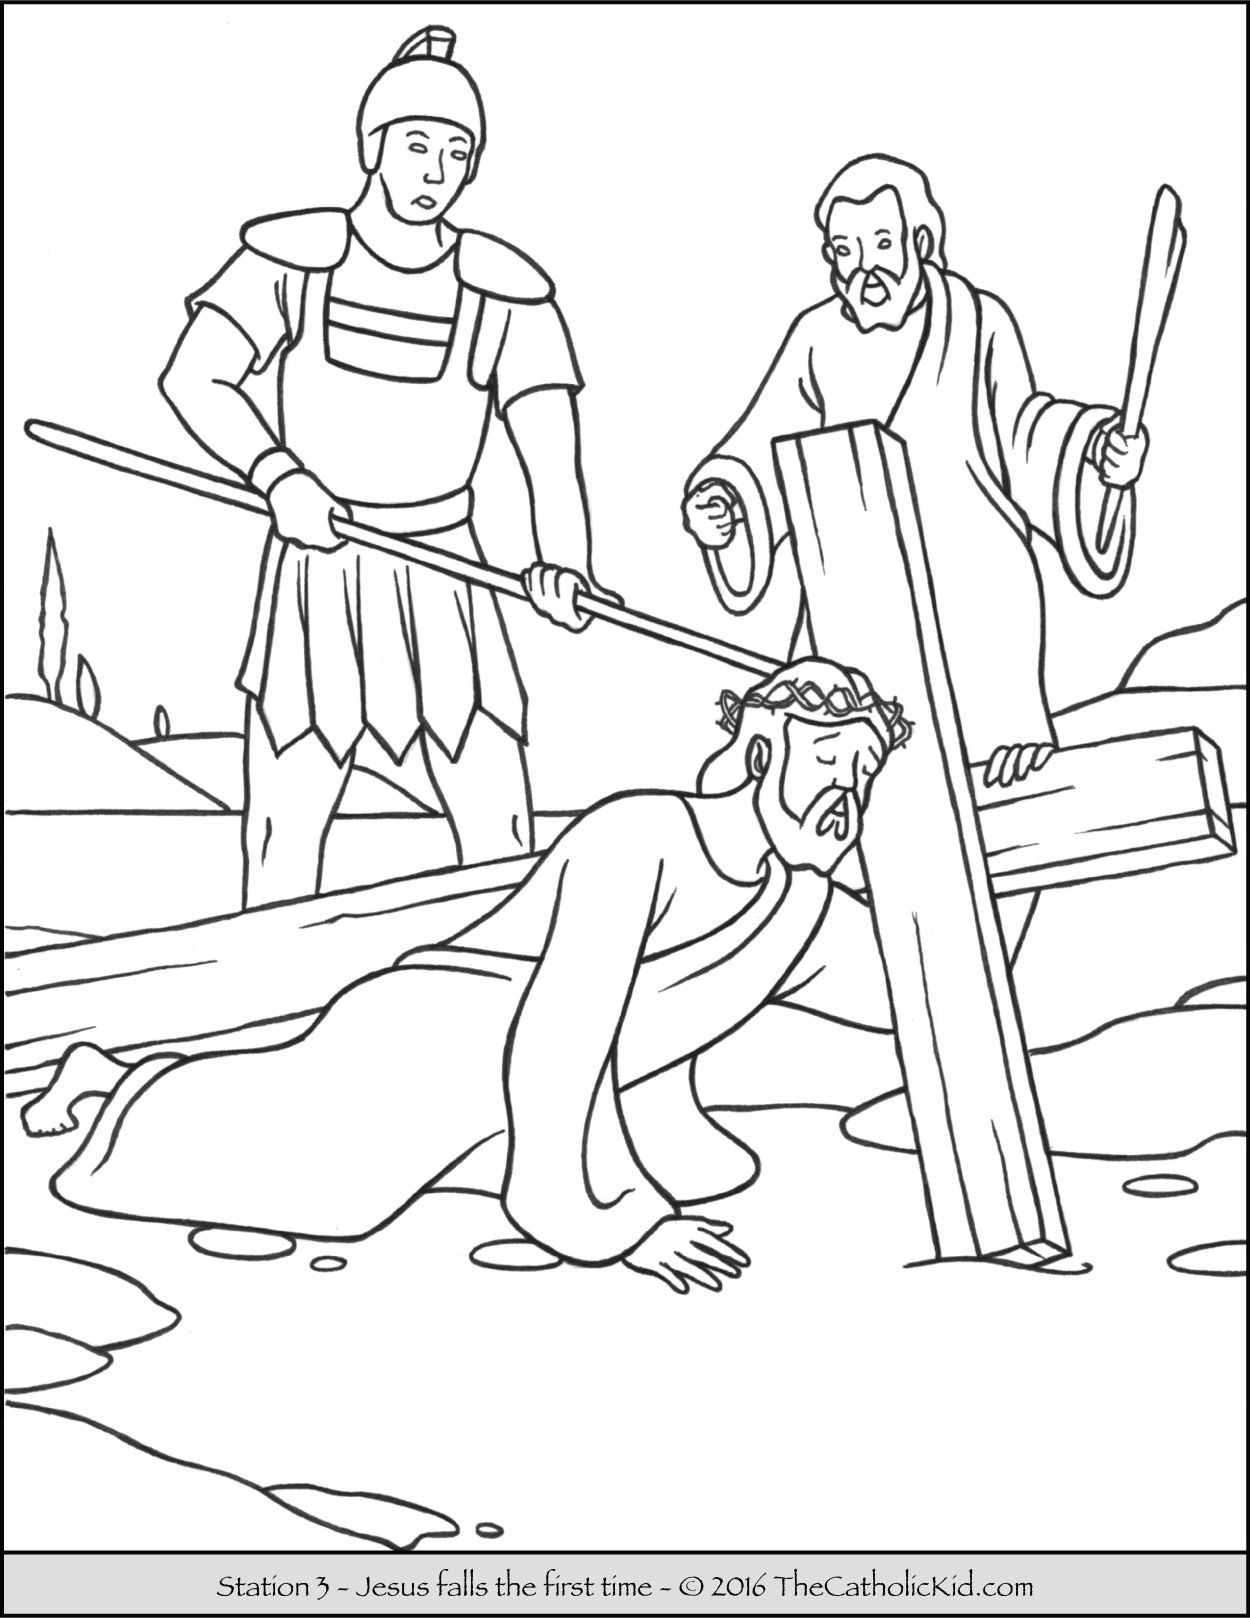 Stations Of The Cross Coloring Pages The Catholic Kid Stations